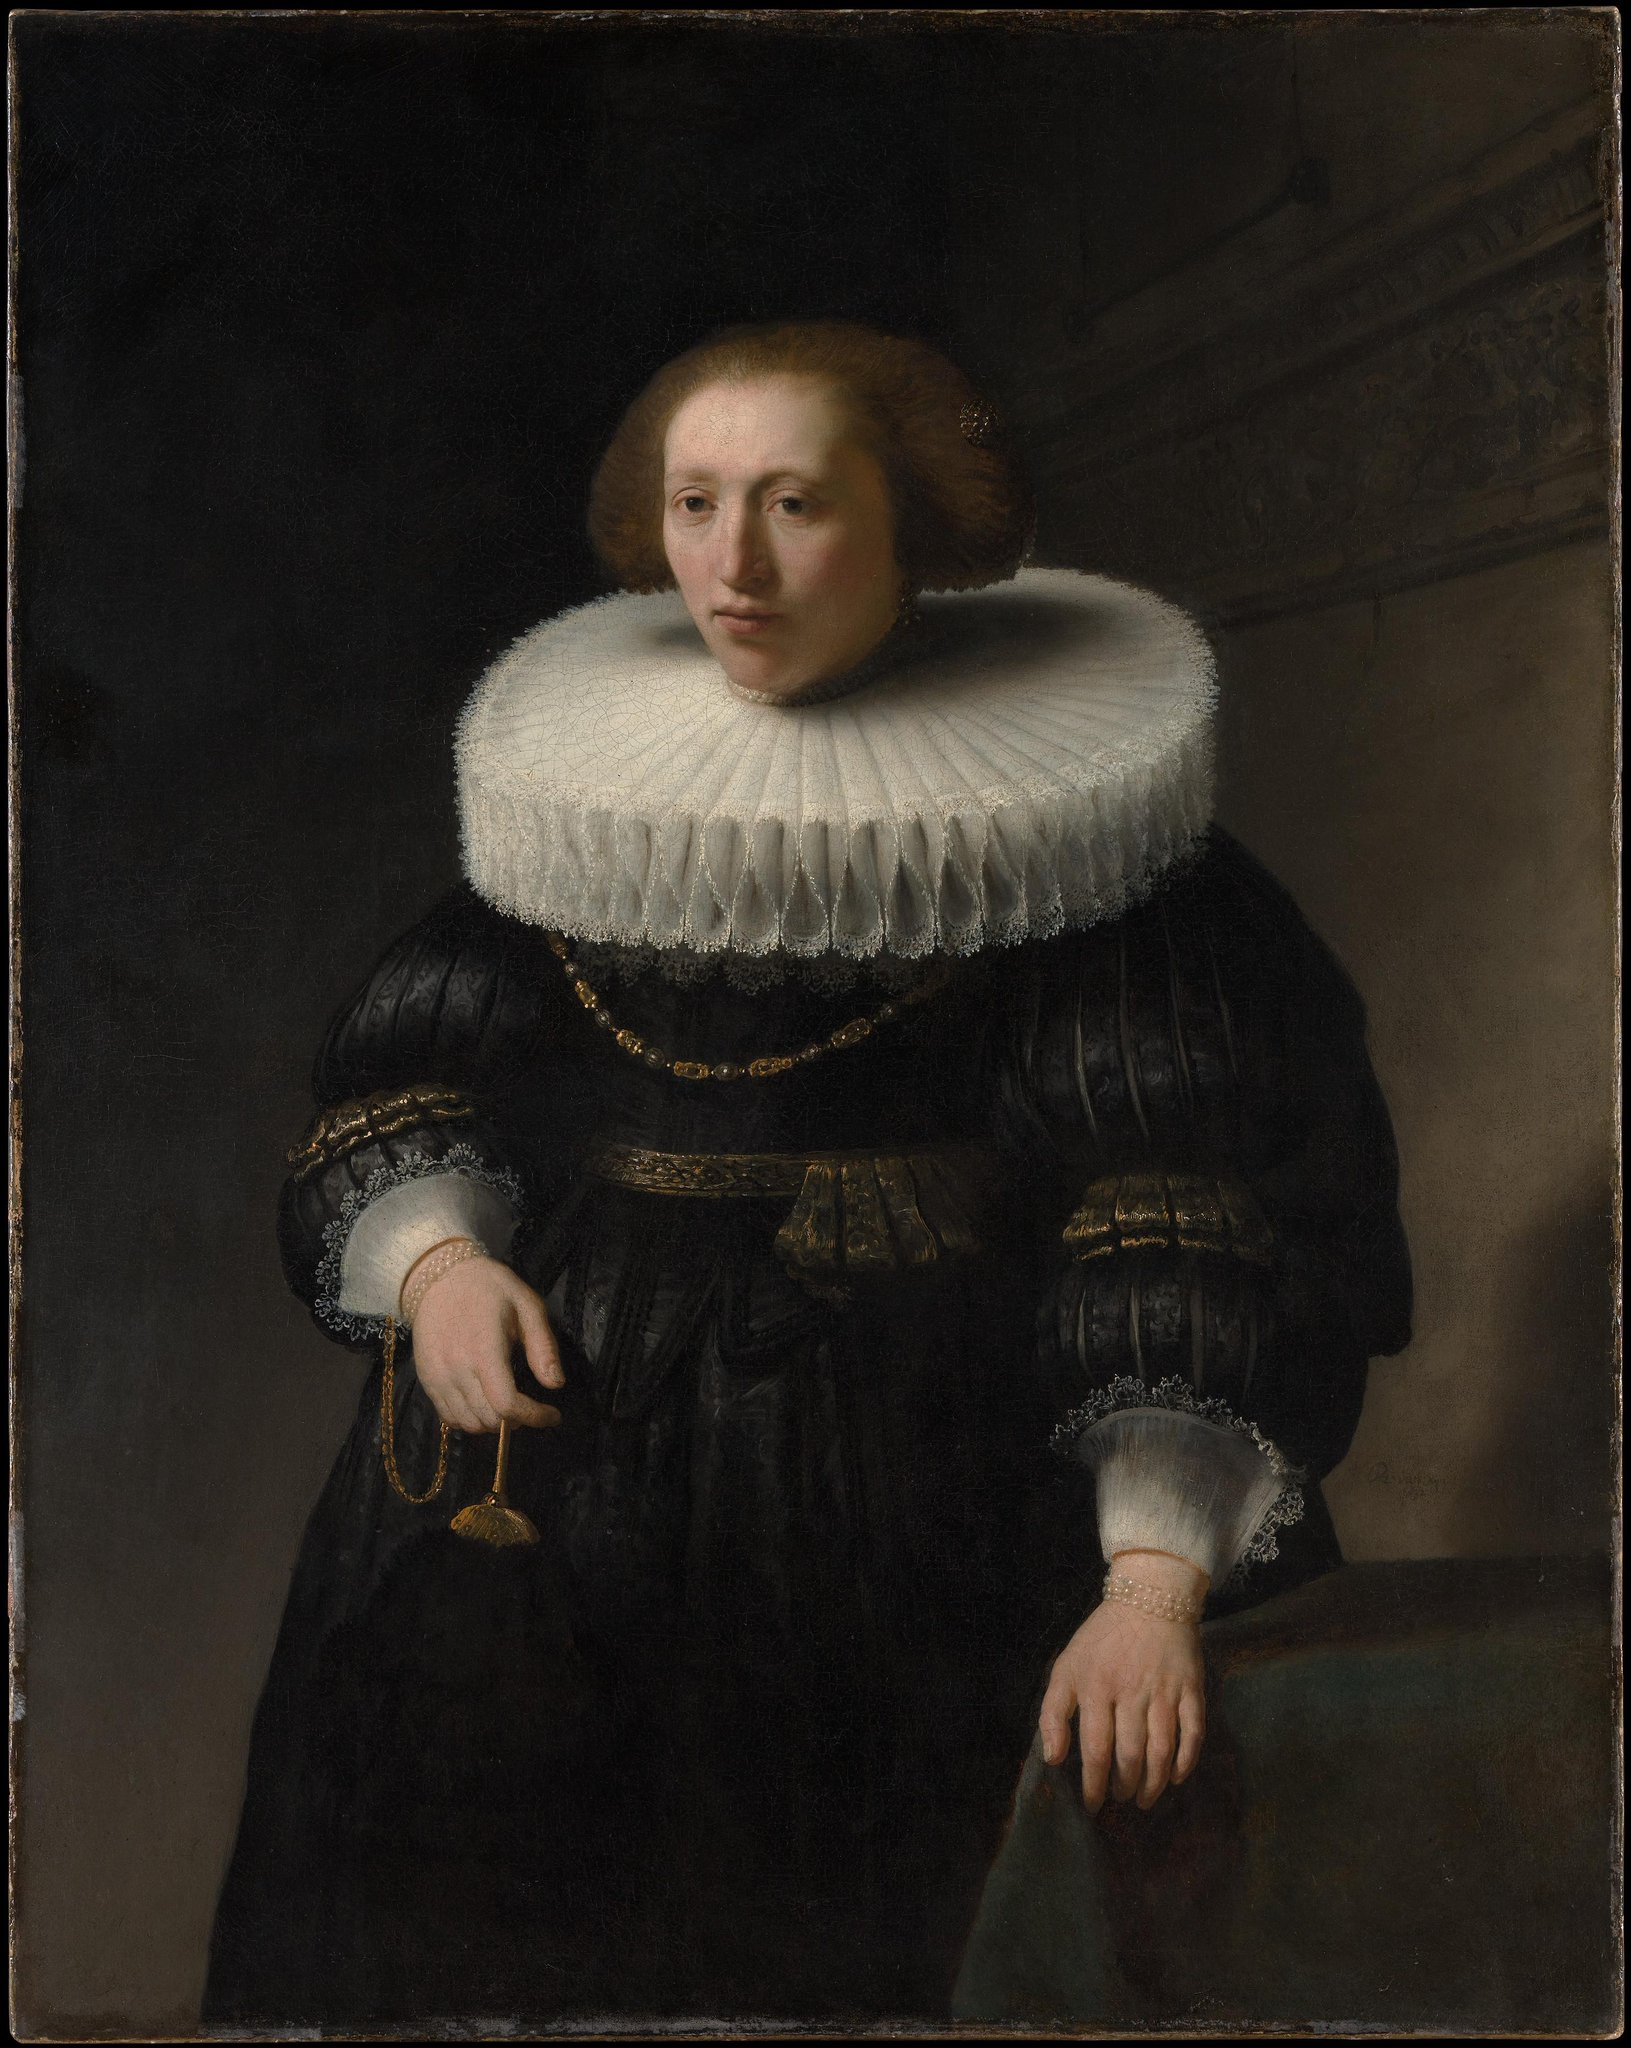 Portrait of a Woman, by Rembrandt 1632   Oil on Canvas   (@metmuseum) #RuffTally http://t.co/zsMp2ttd0T